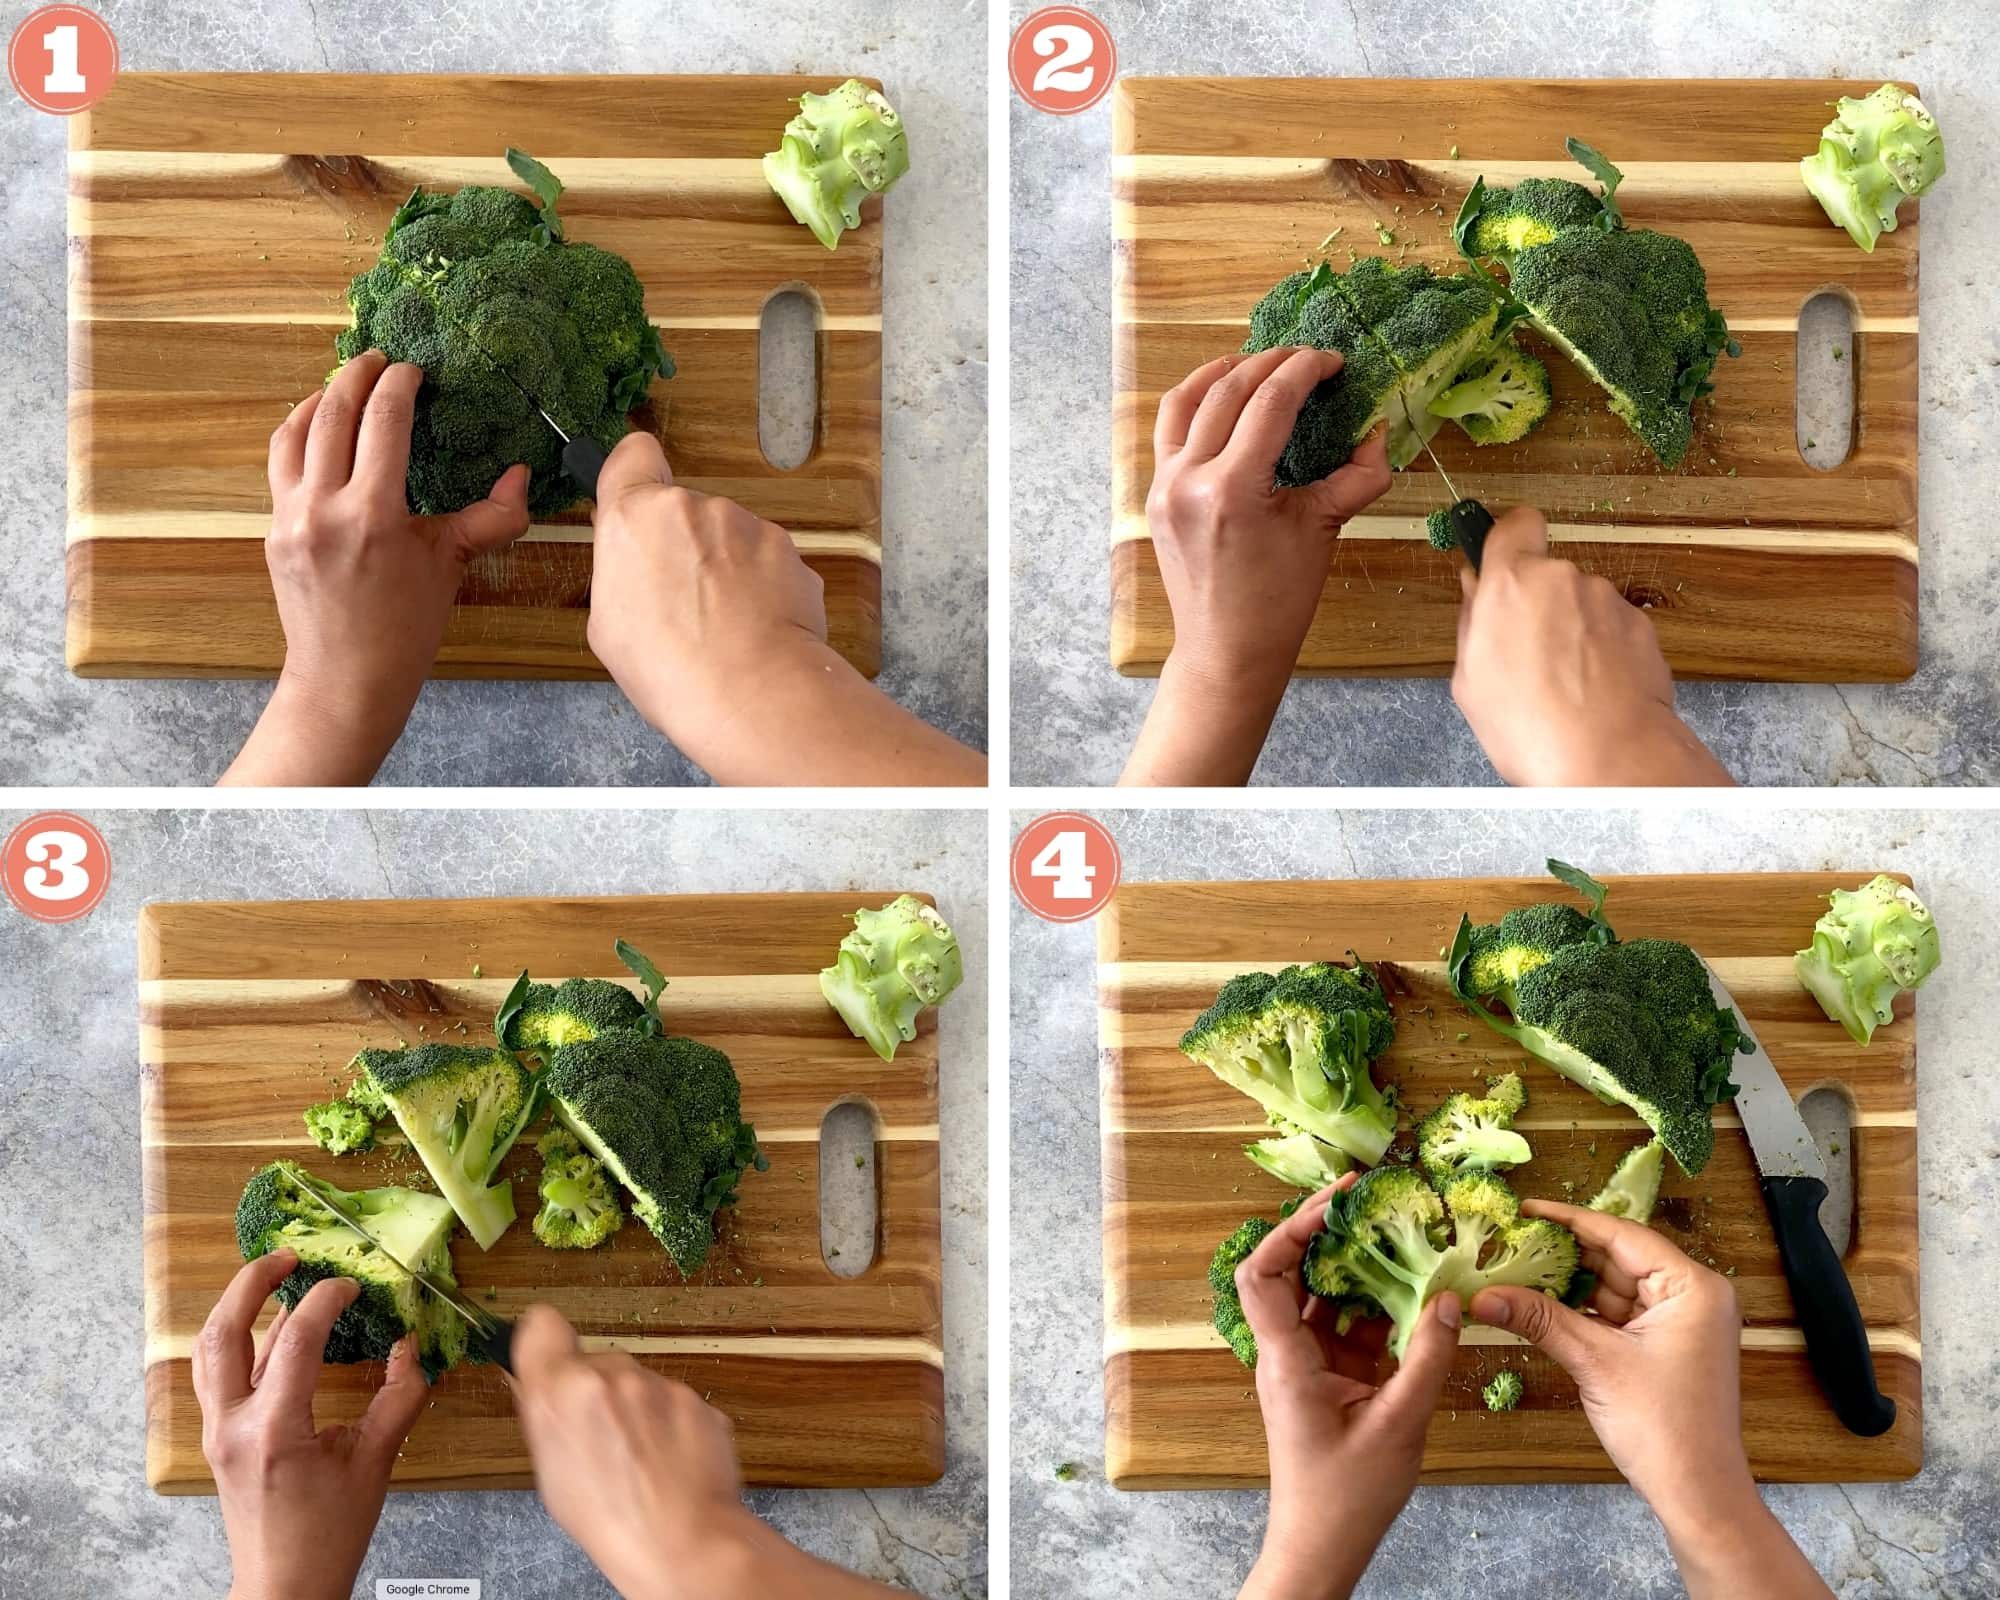 Instructions for how to cut broccoli